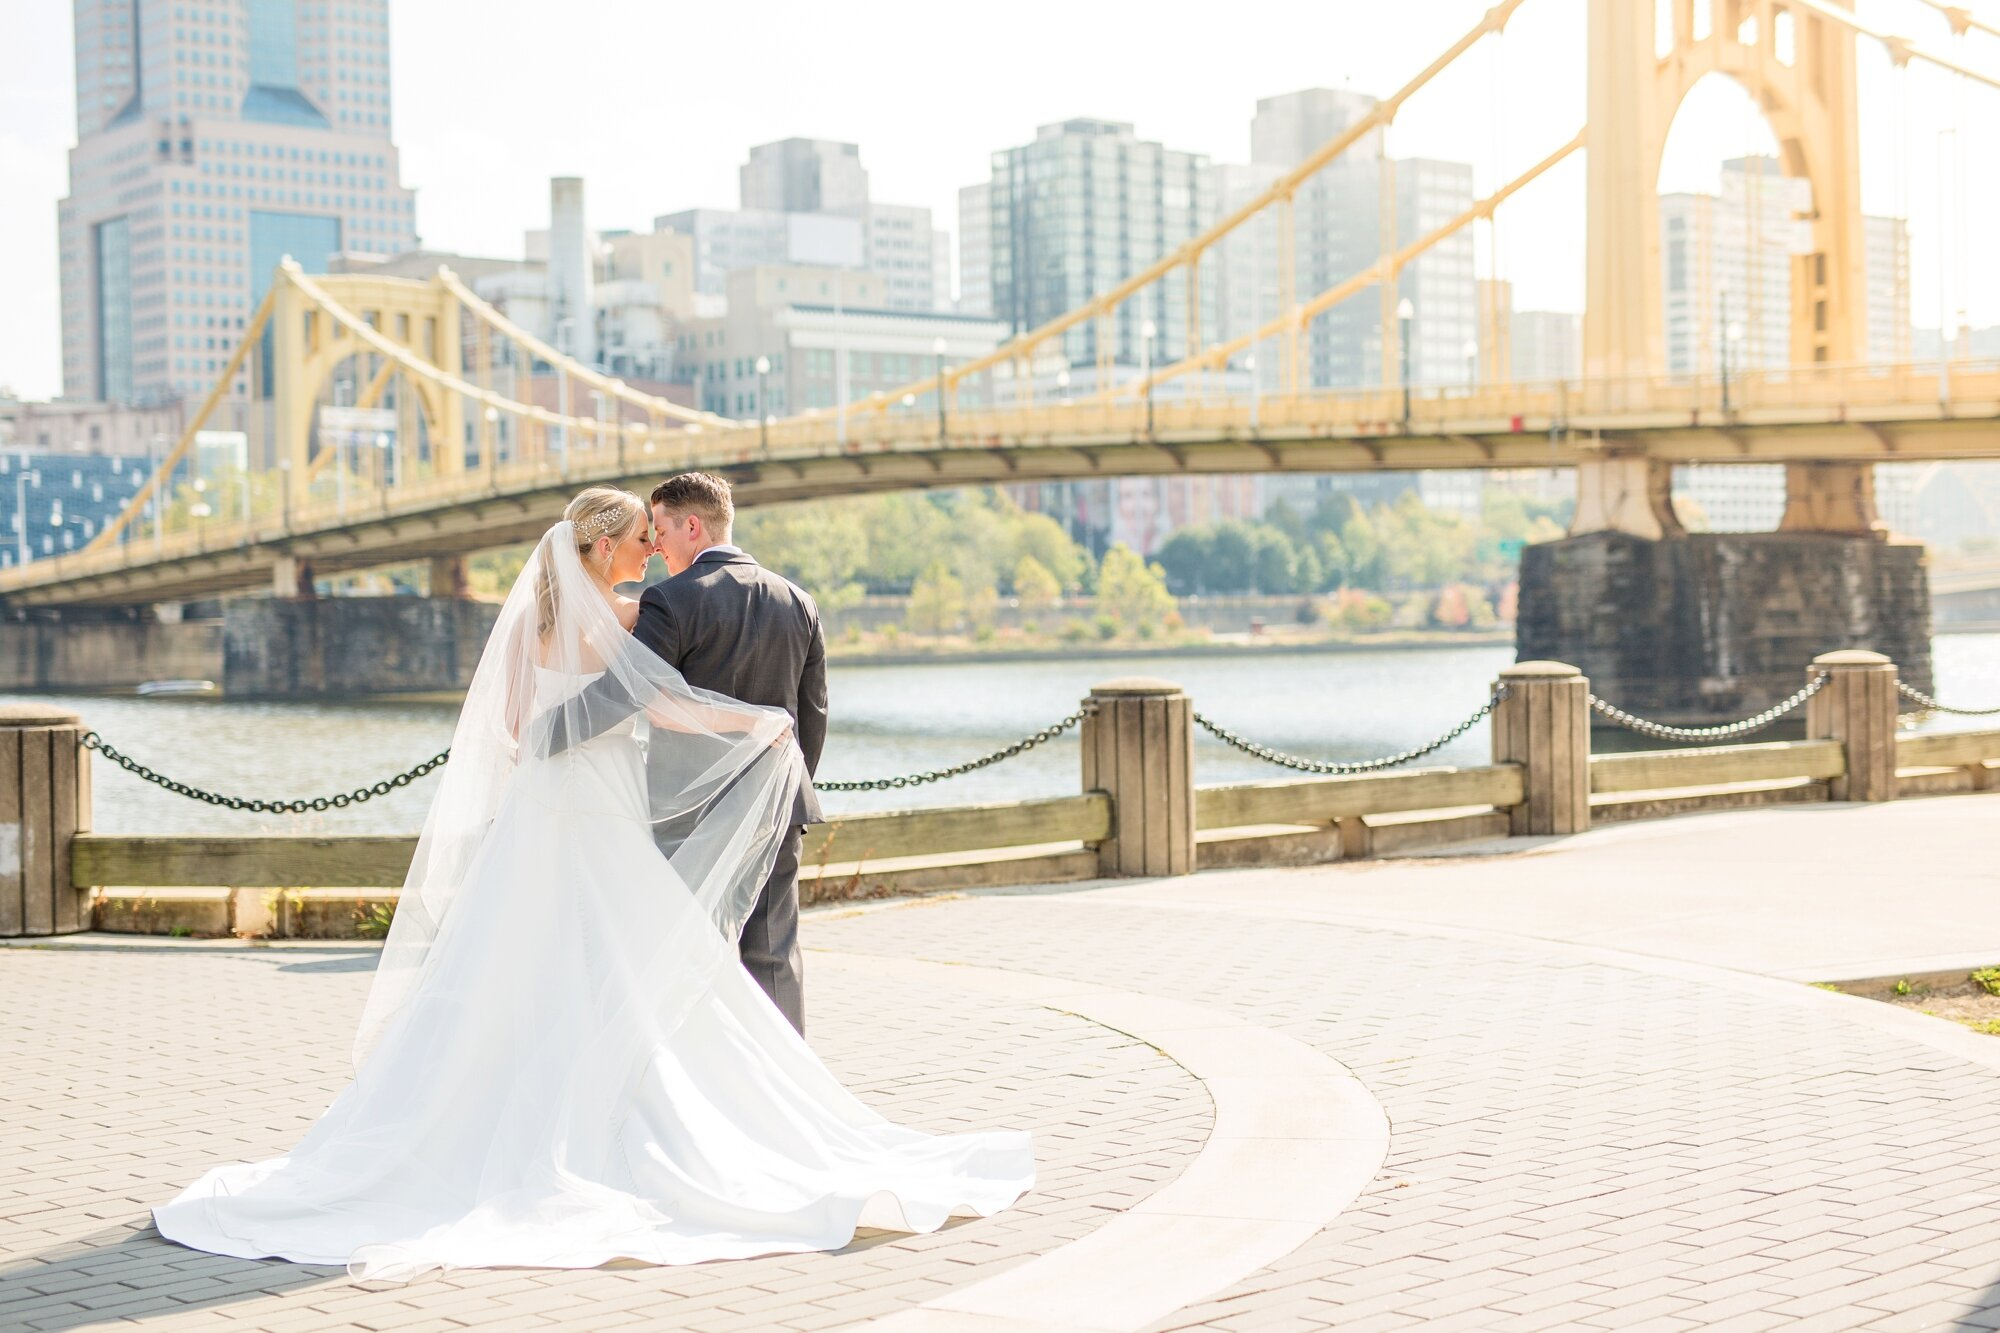 pittsburgh wedding photographer, the pennsylvanian wedding, the pennsylvanian wedding ceremony, the pennsylvanian wedding photos, downtown pittsburgh wedding photos